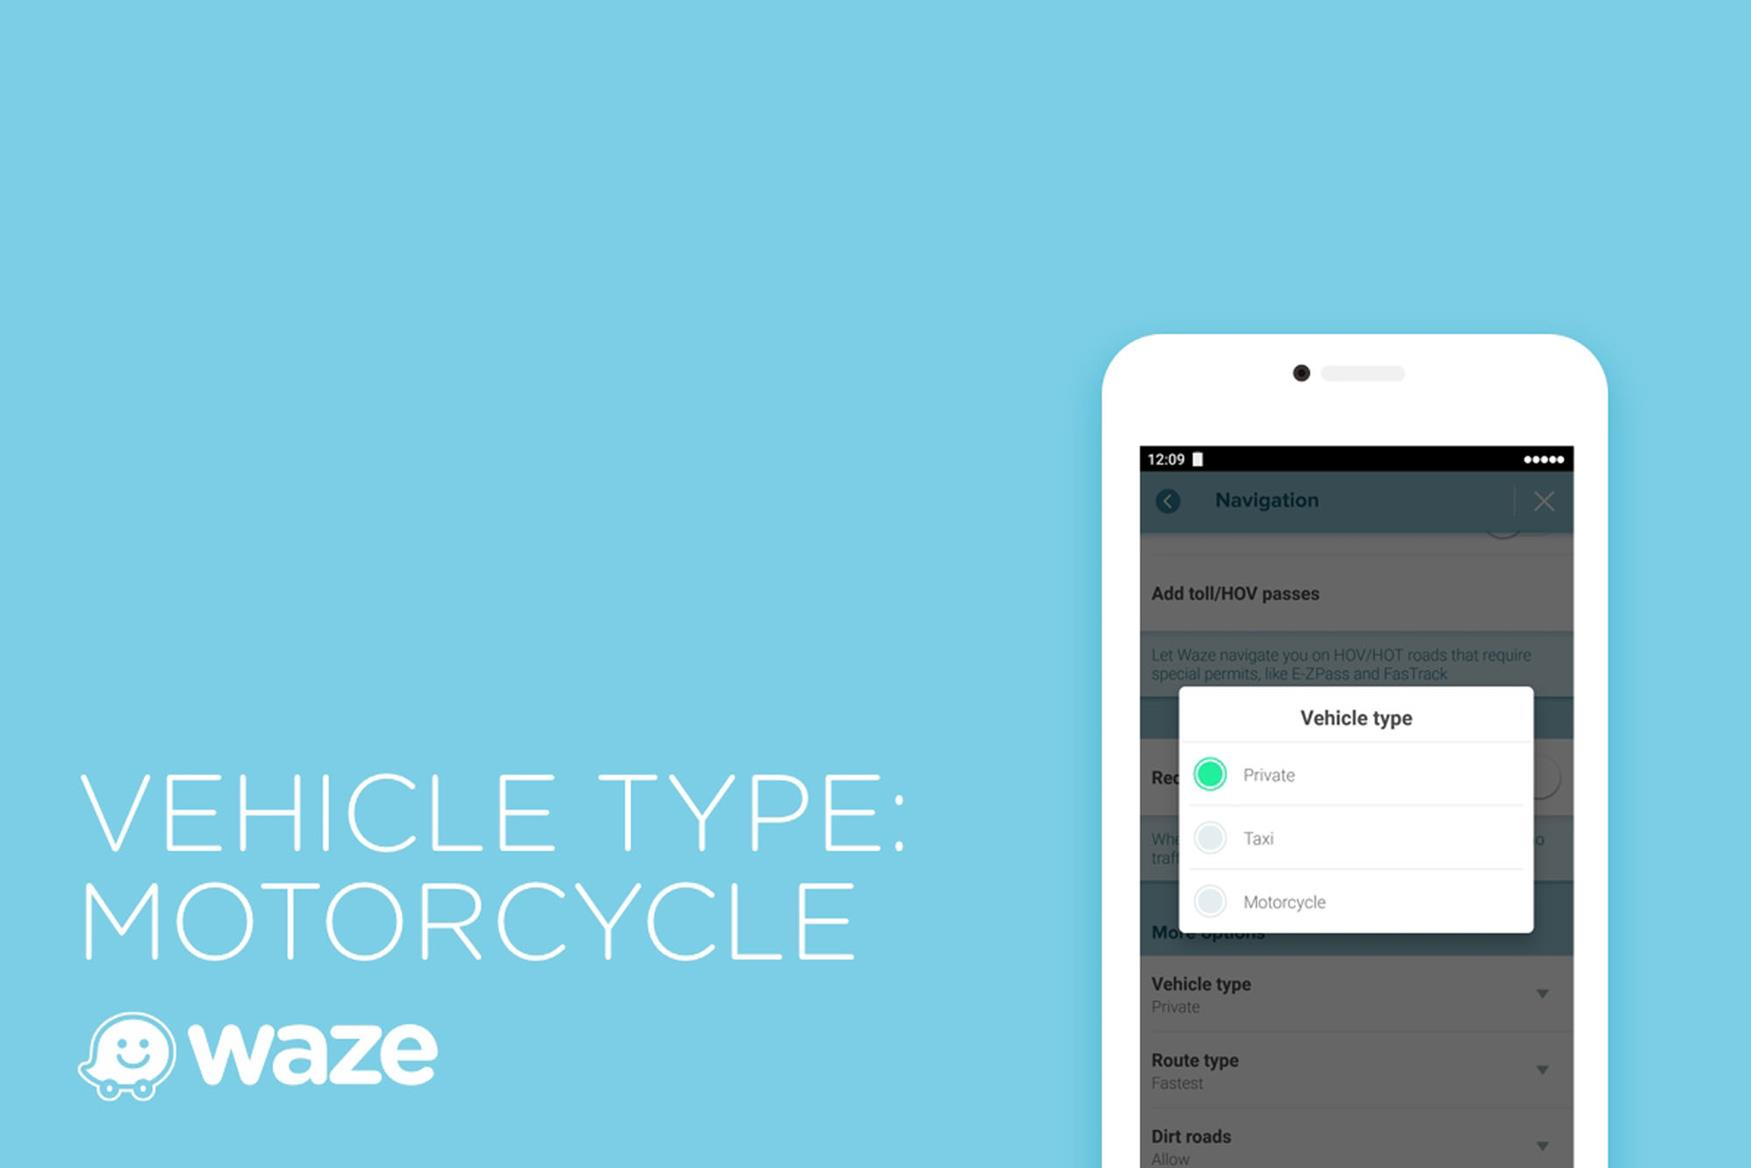 Waze adds navigation features for motorcycles